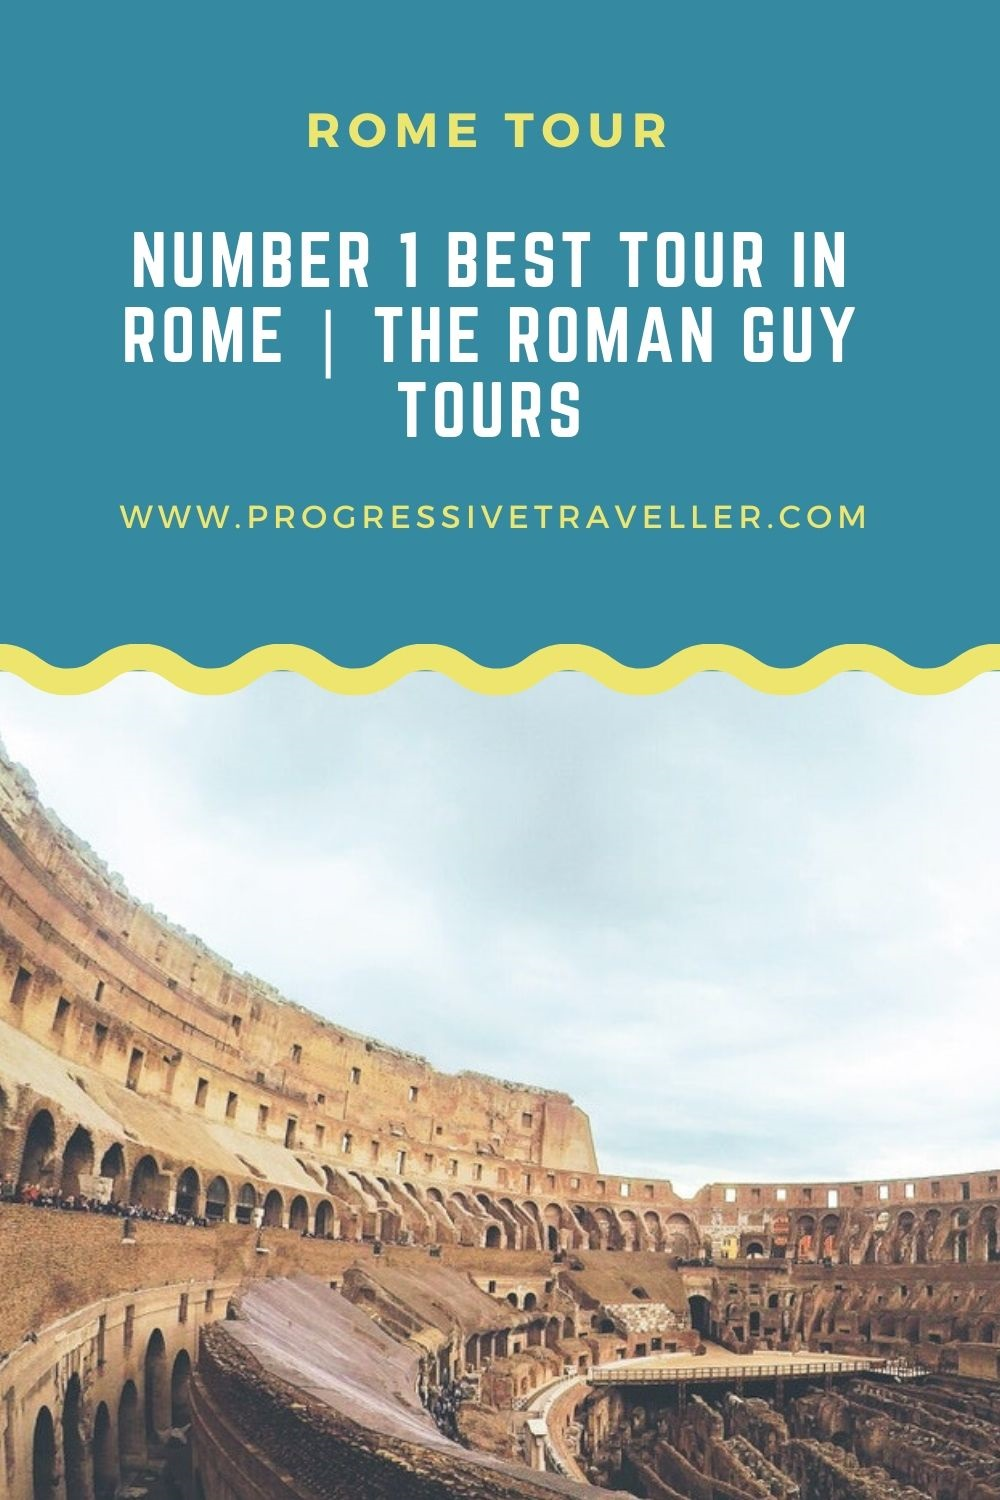 Number 1 Best Rome Tour